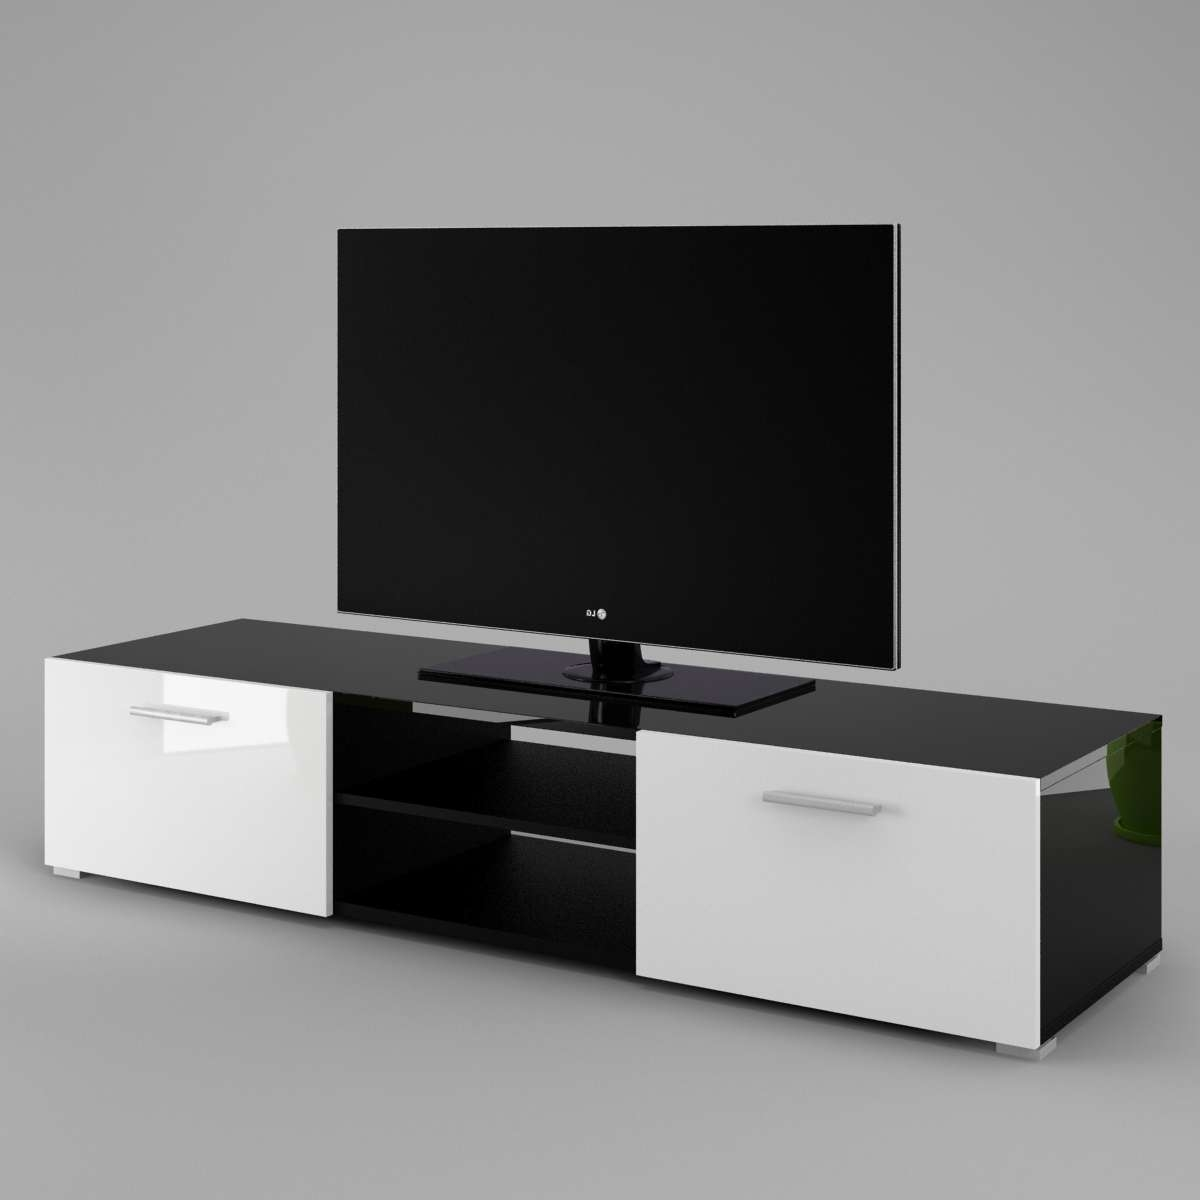 Tv Cabinet Luna – Labi Furniturelabi Furniture In Black Gloss Tv Cabinets (View 19 of 20)